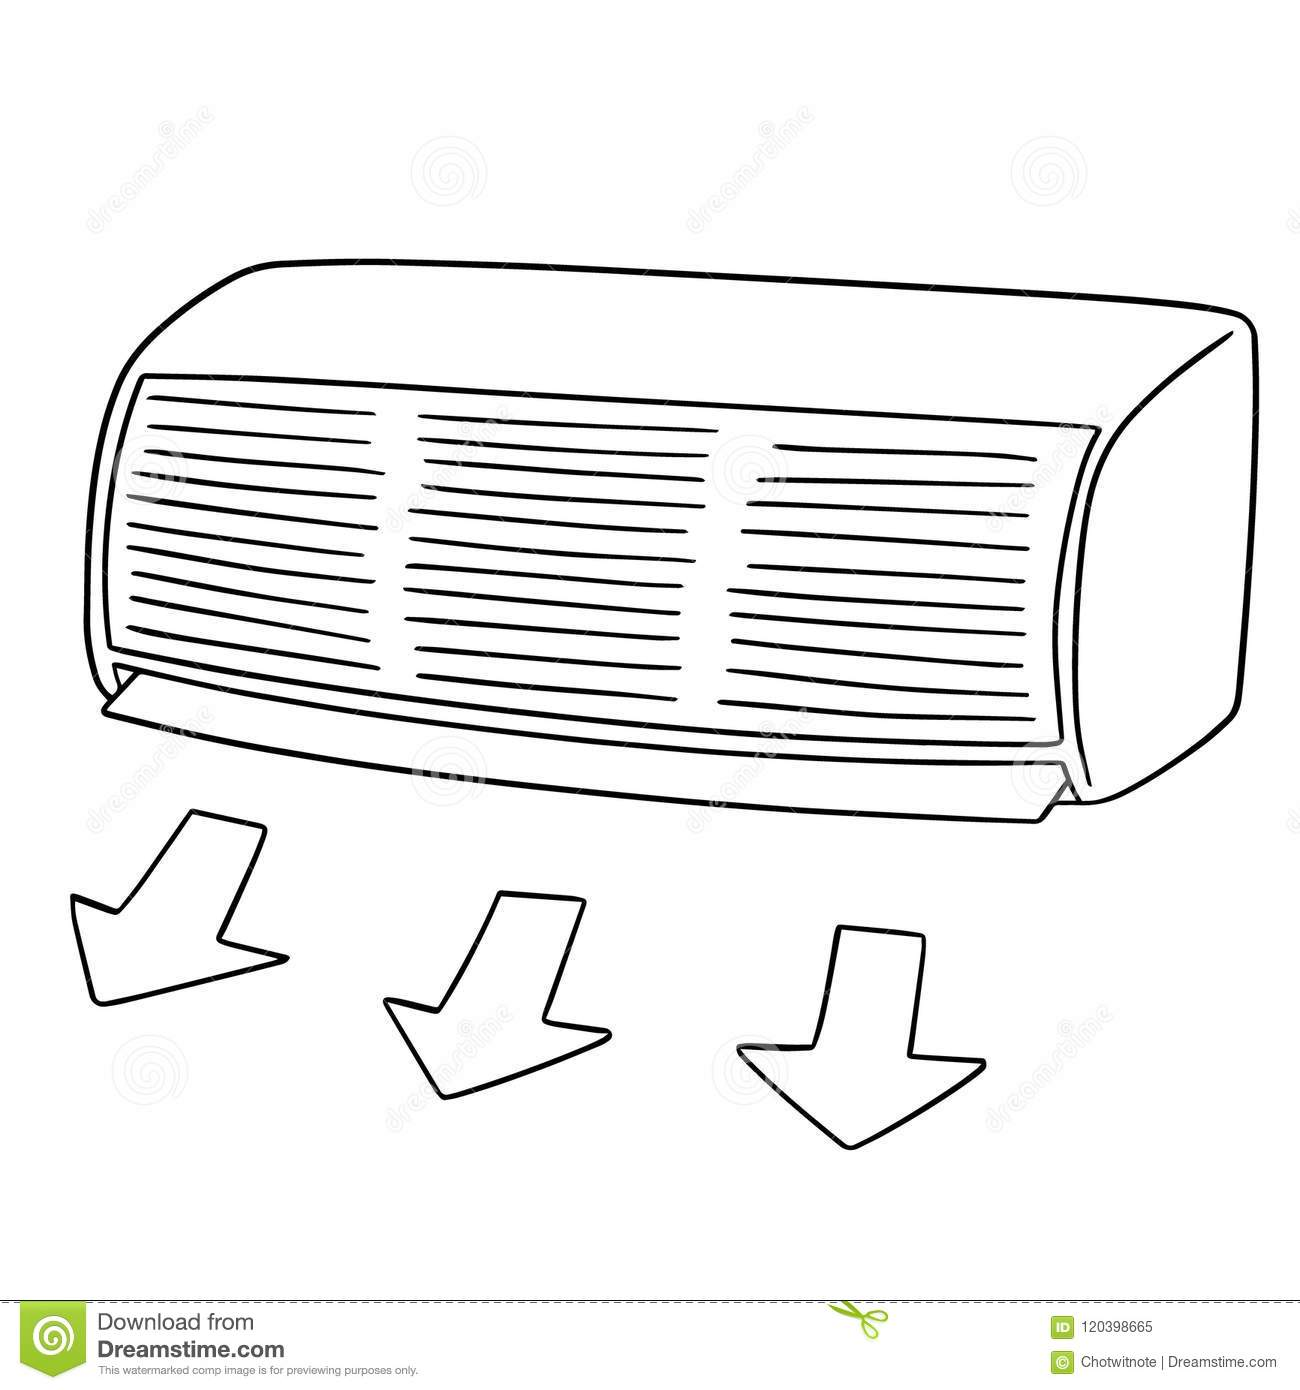 Vector of air conditioner stock vector. Illustration of